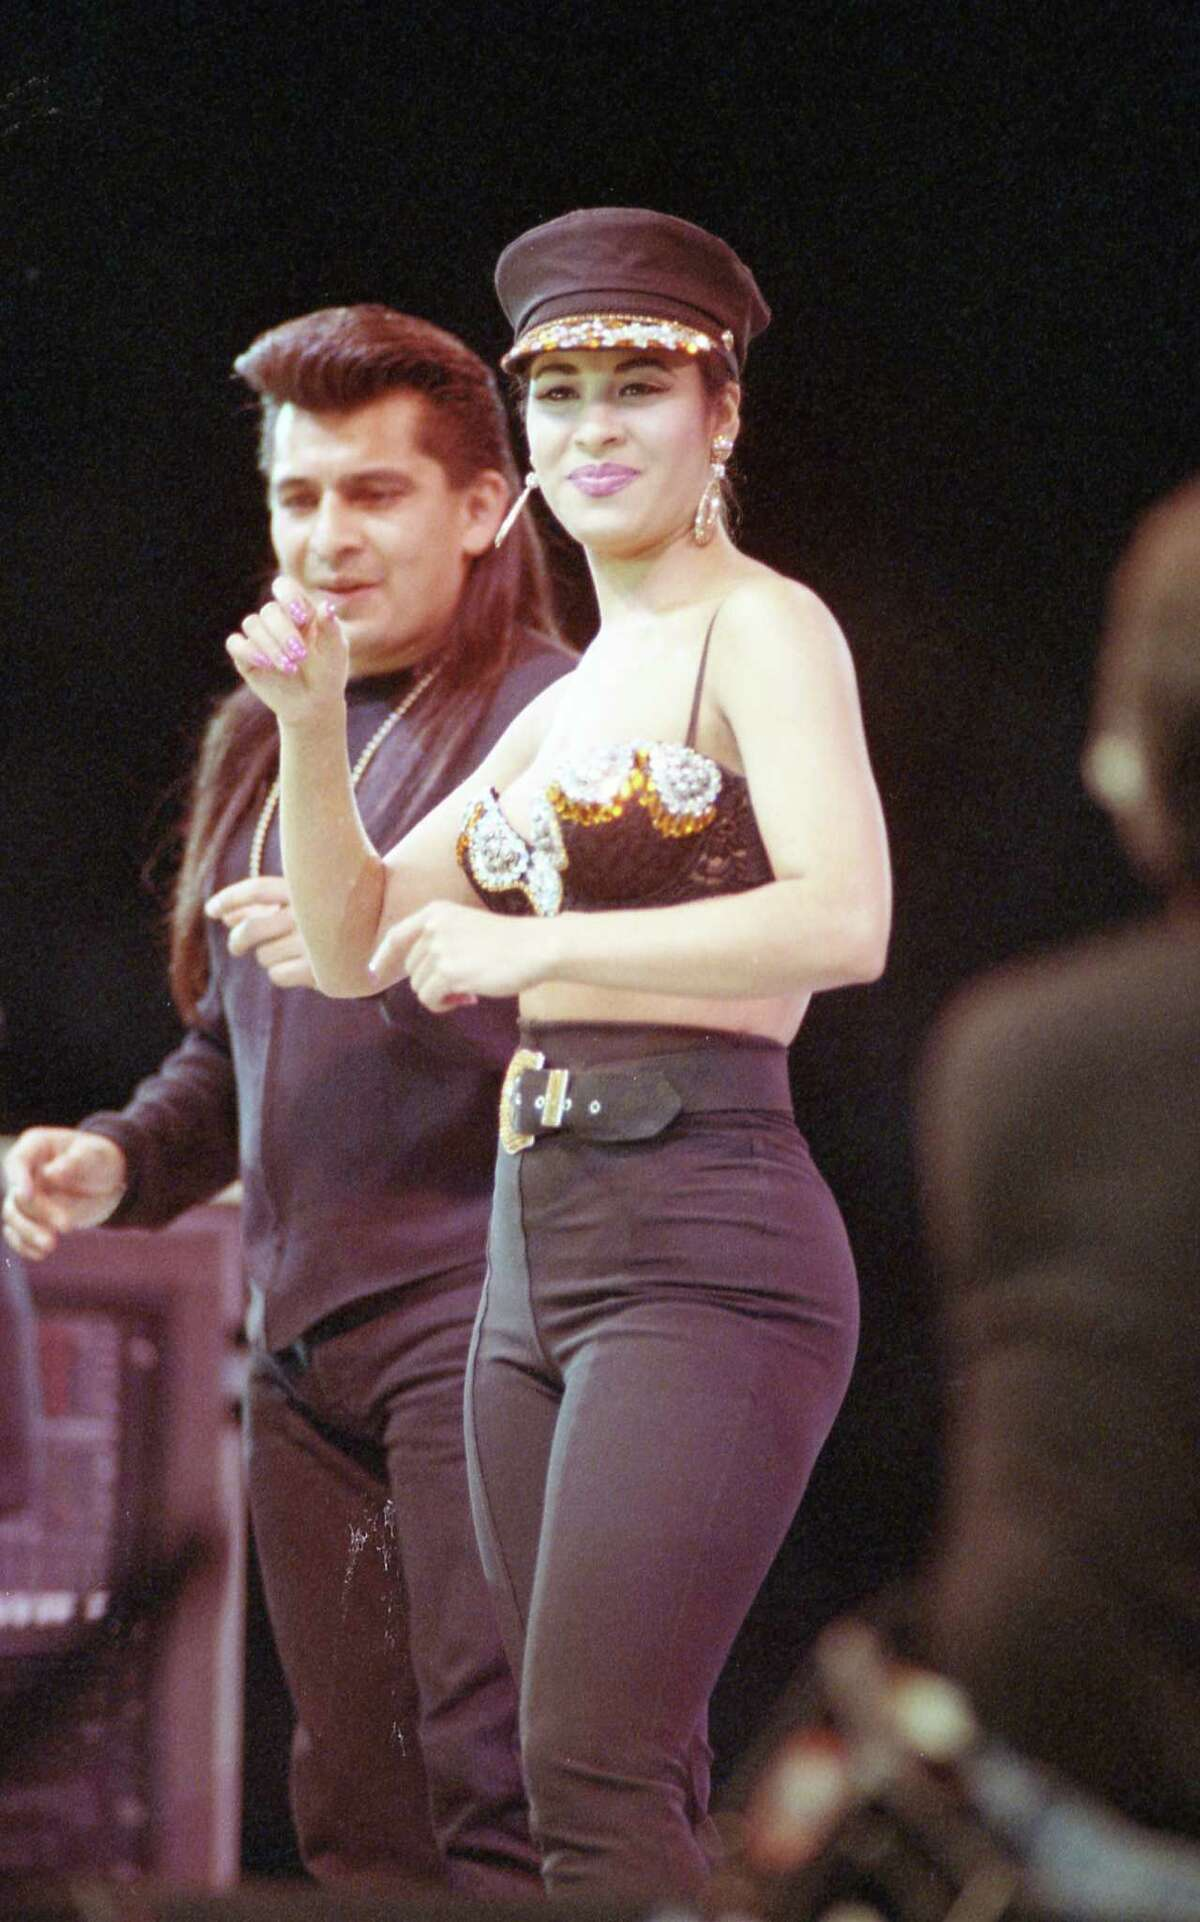 Selena performs during a Sunday matinee on February 28, 1993 at the Houston Livestock Show and Rodeo inside the Astrodome that drew 66,994 people and set an all-time attendance record.